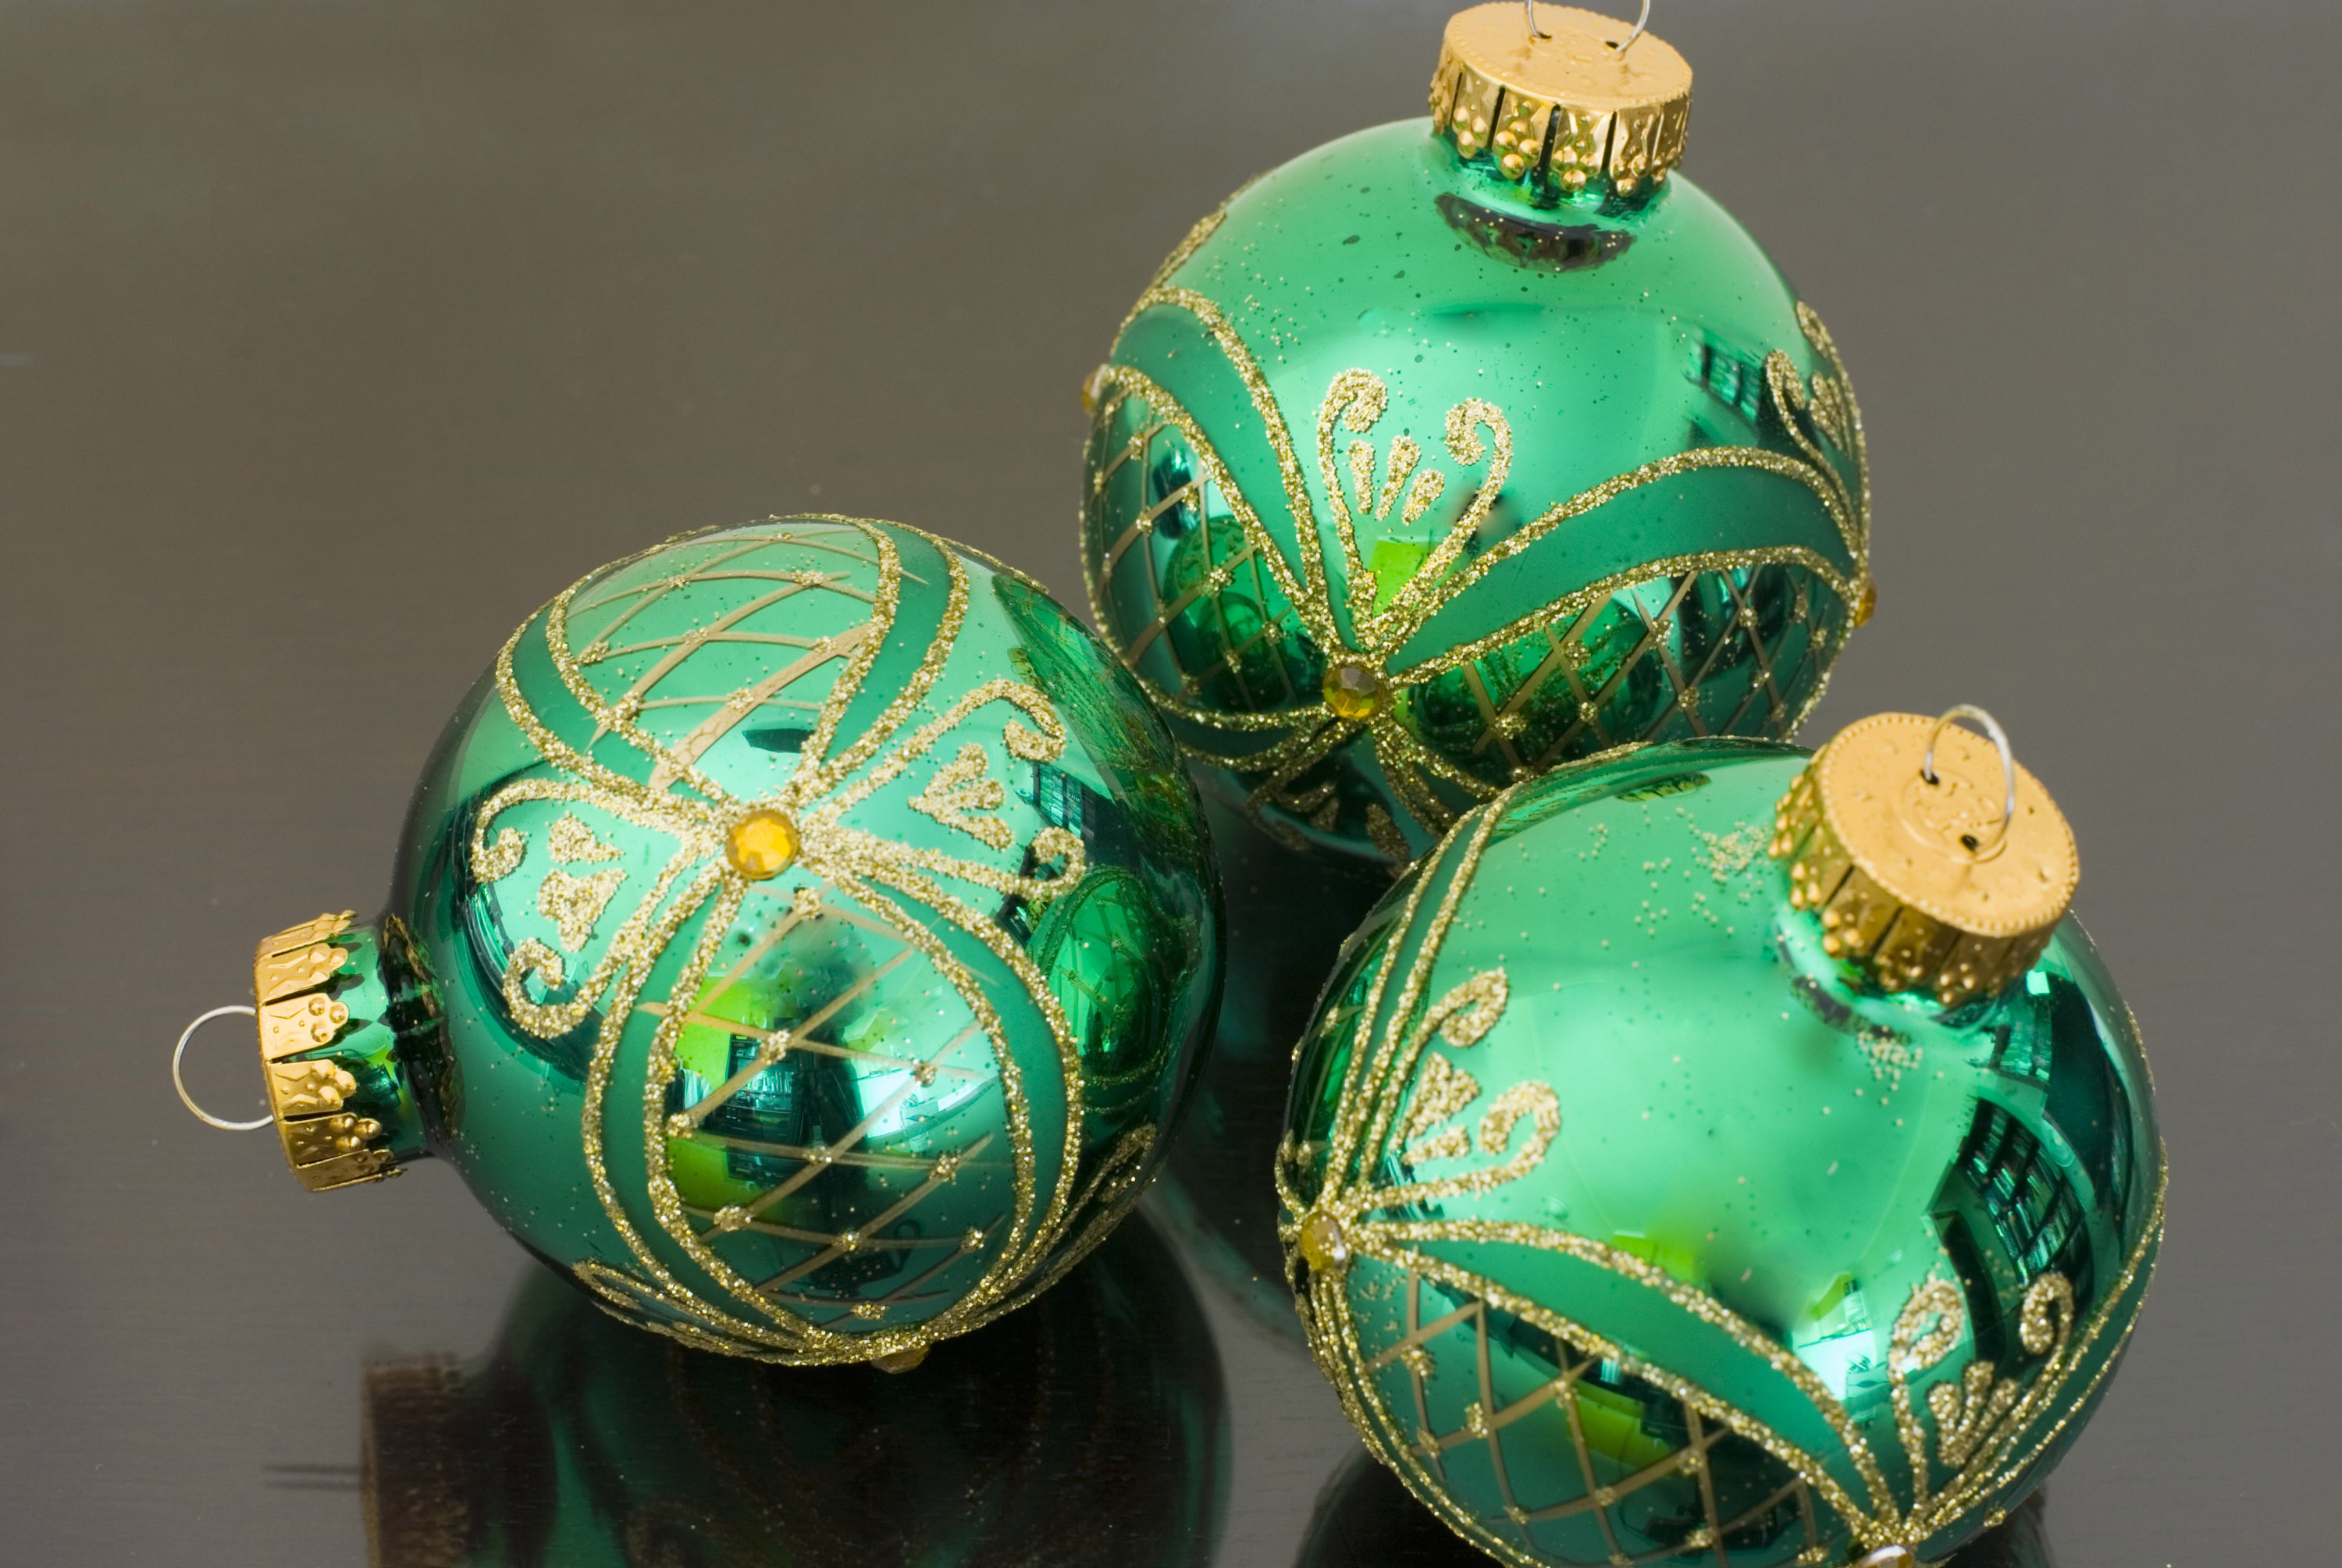 Three green reflective glass baubles on a dark background